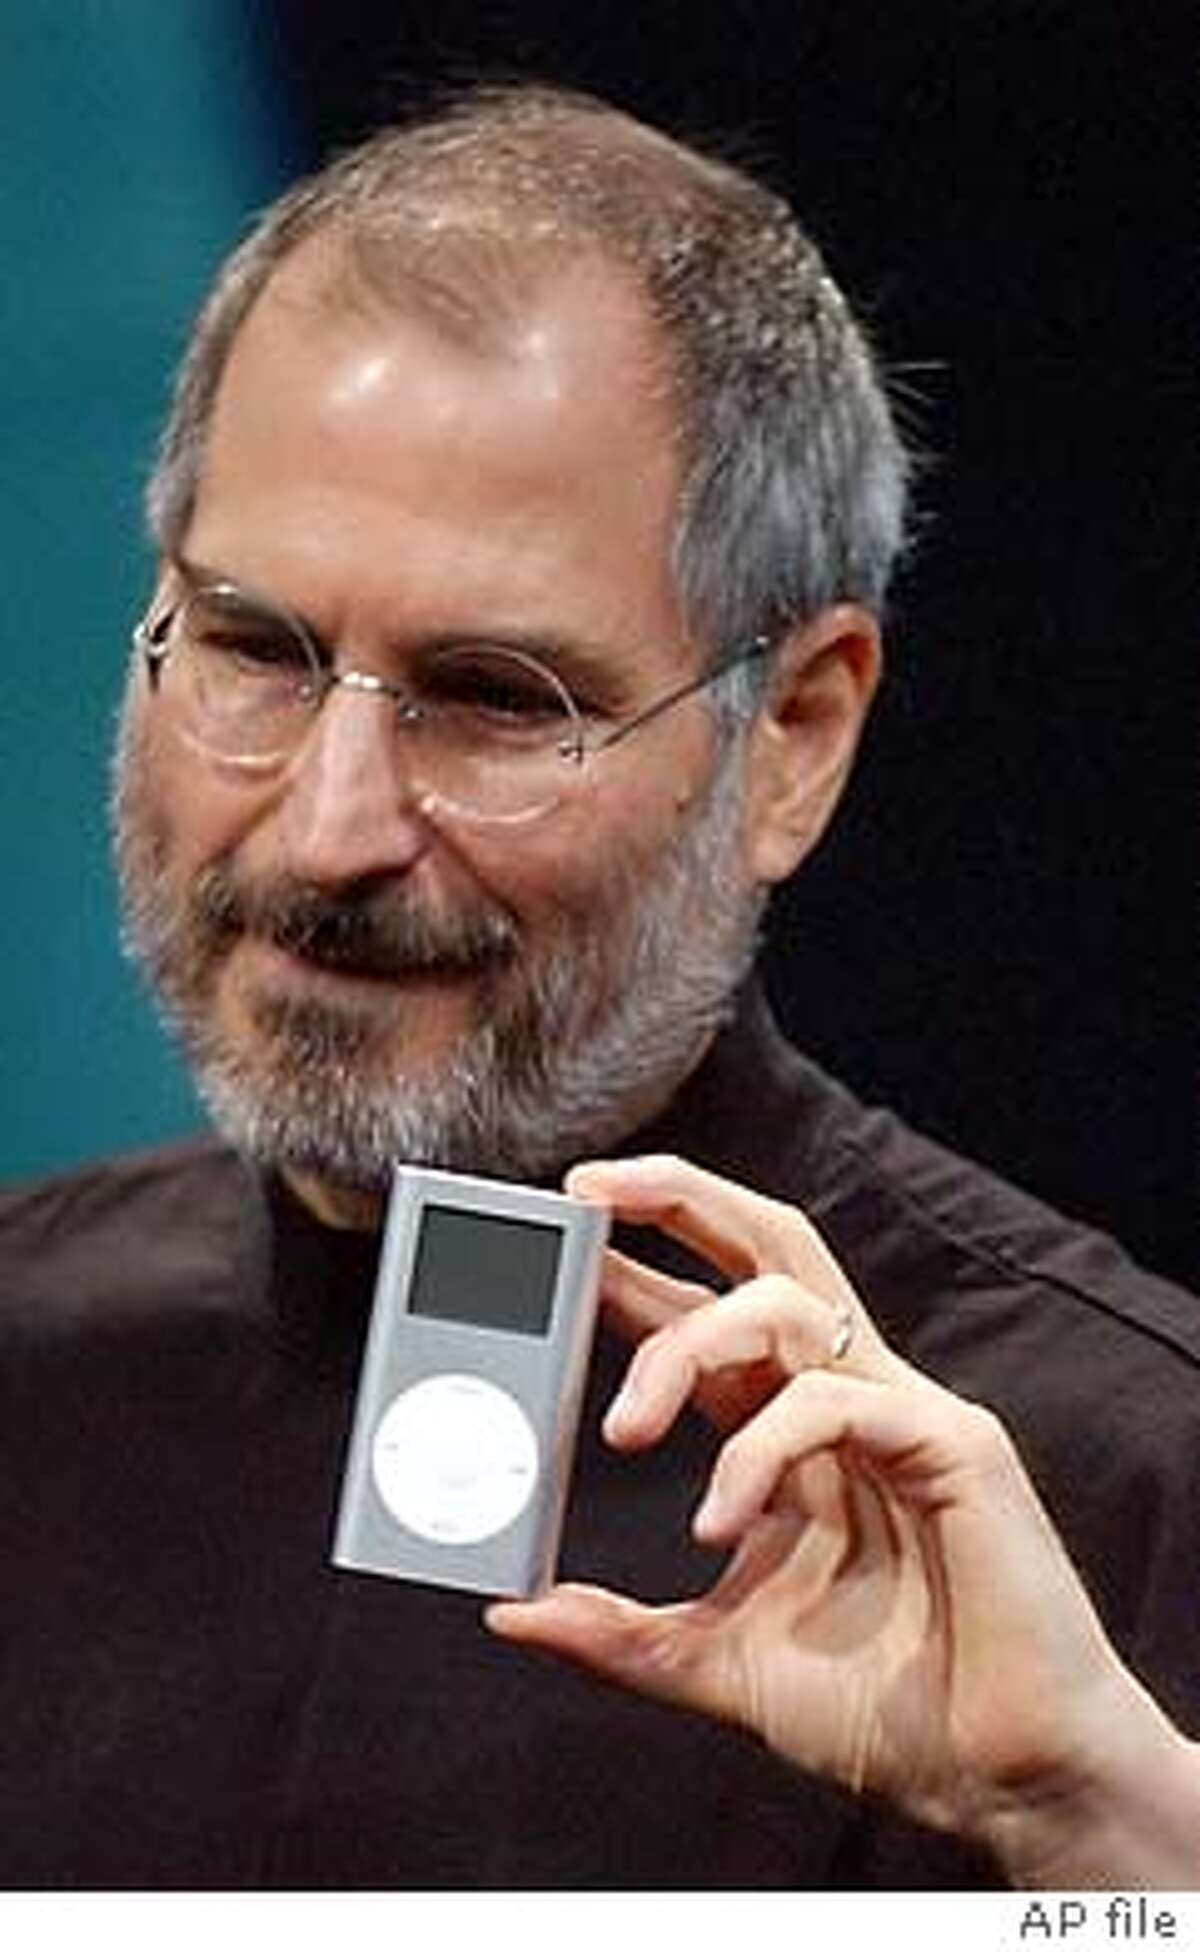 ** FILE ** Apple CEO Steve Jobs displays his company's Mini-Ipod at the Macworld Conference and Expo in San Francisco on Tuesday, Jan 6, 2004. Apple Computer Inc. is investigating complaints that its popular iPod mini is prone to static and other sound distortions when playing back music. (AP Photo/Marcio Jose Sanchez)